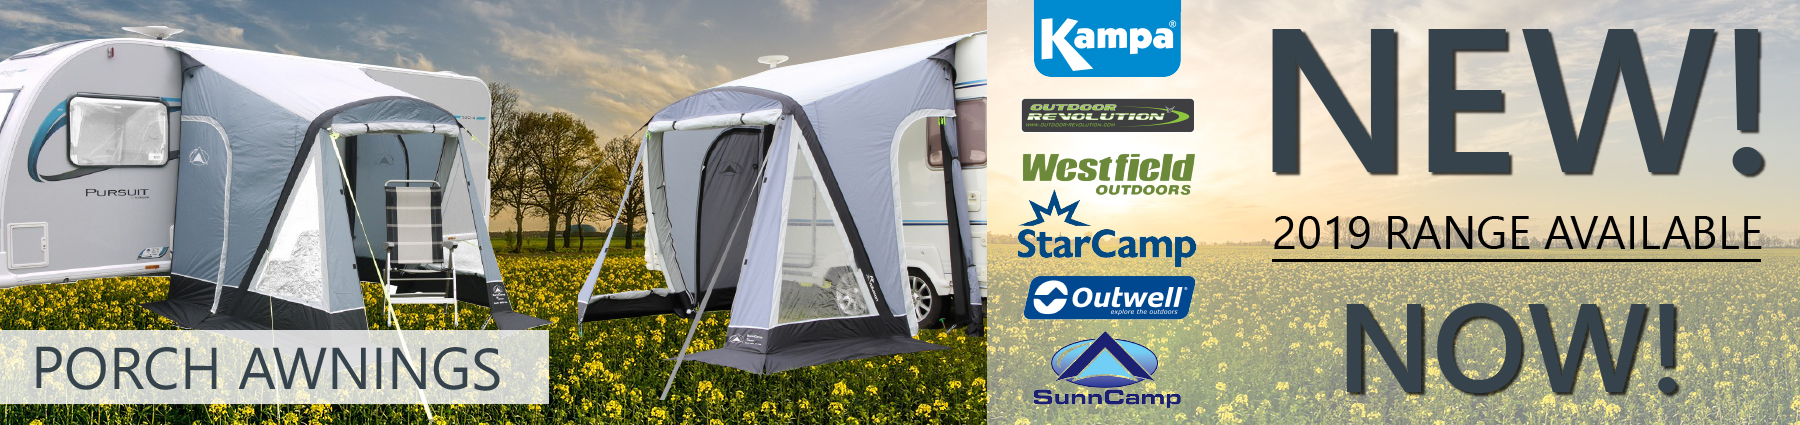 New 2019 Porch Awnings In Stock